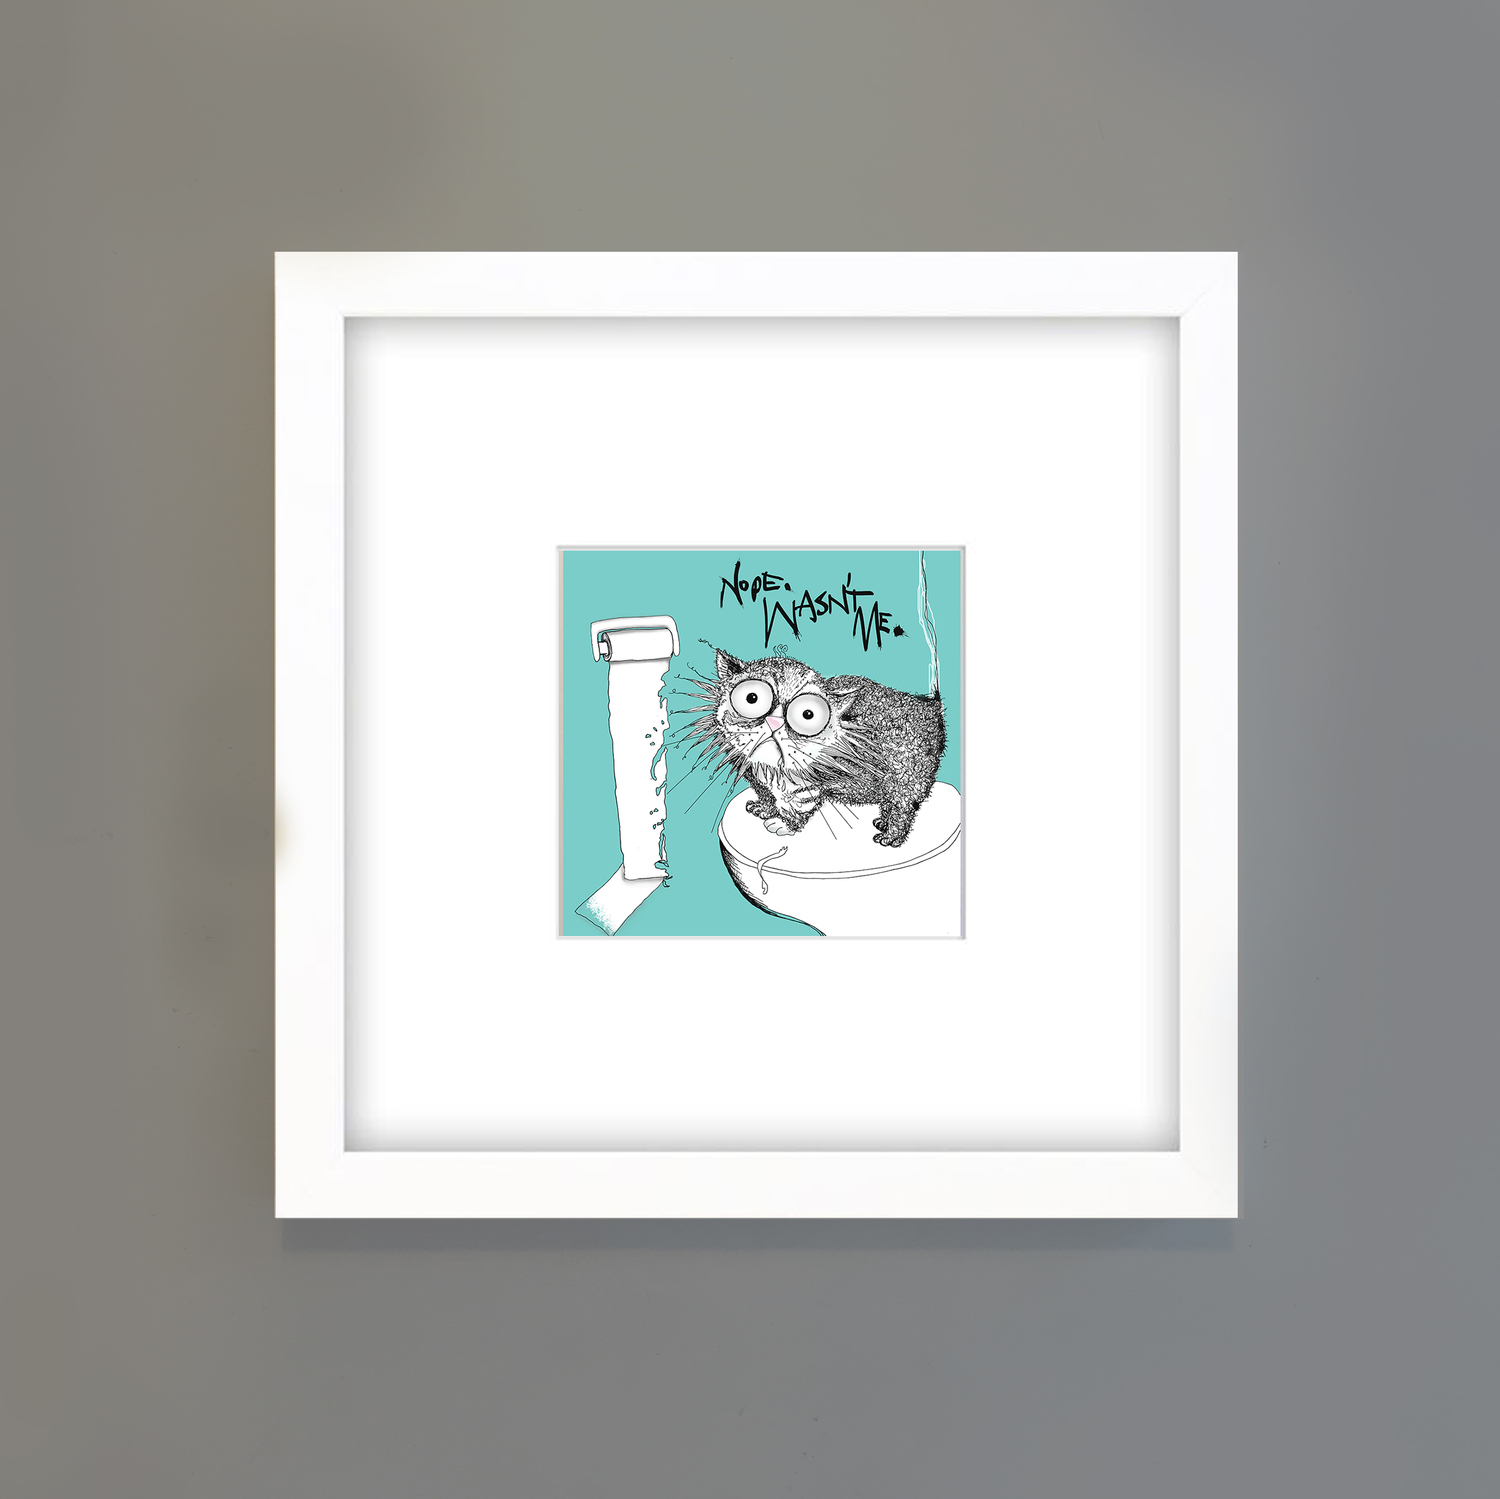 CAT DON'T CARE |Natalie Palmer-Sutton Art |limited edition prints for cat lovers +LOO+ROLL+CHOMPER_NATALIE+SUTTON_CAT+DONT+CARE.jpg